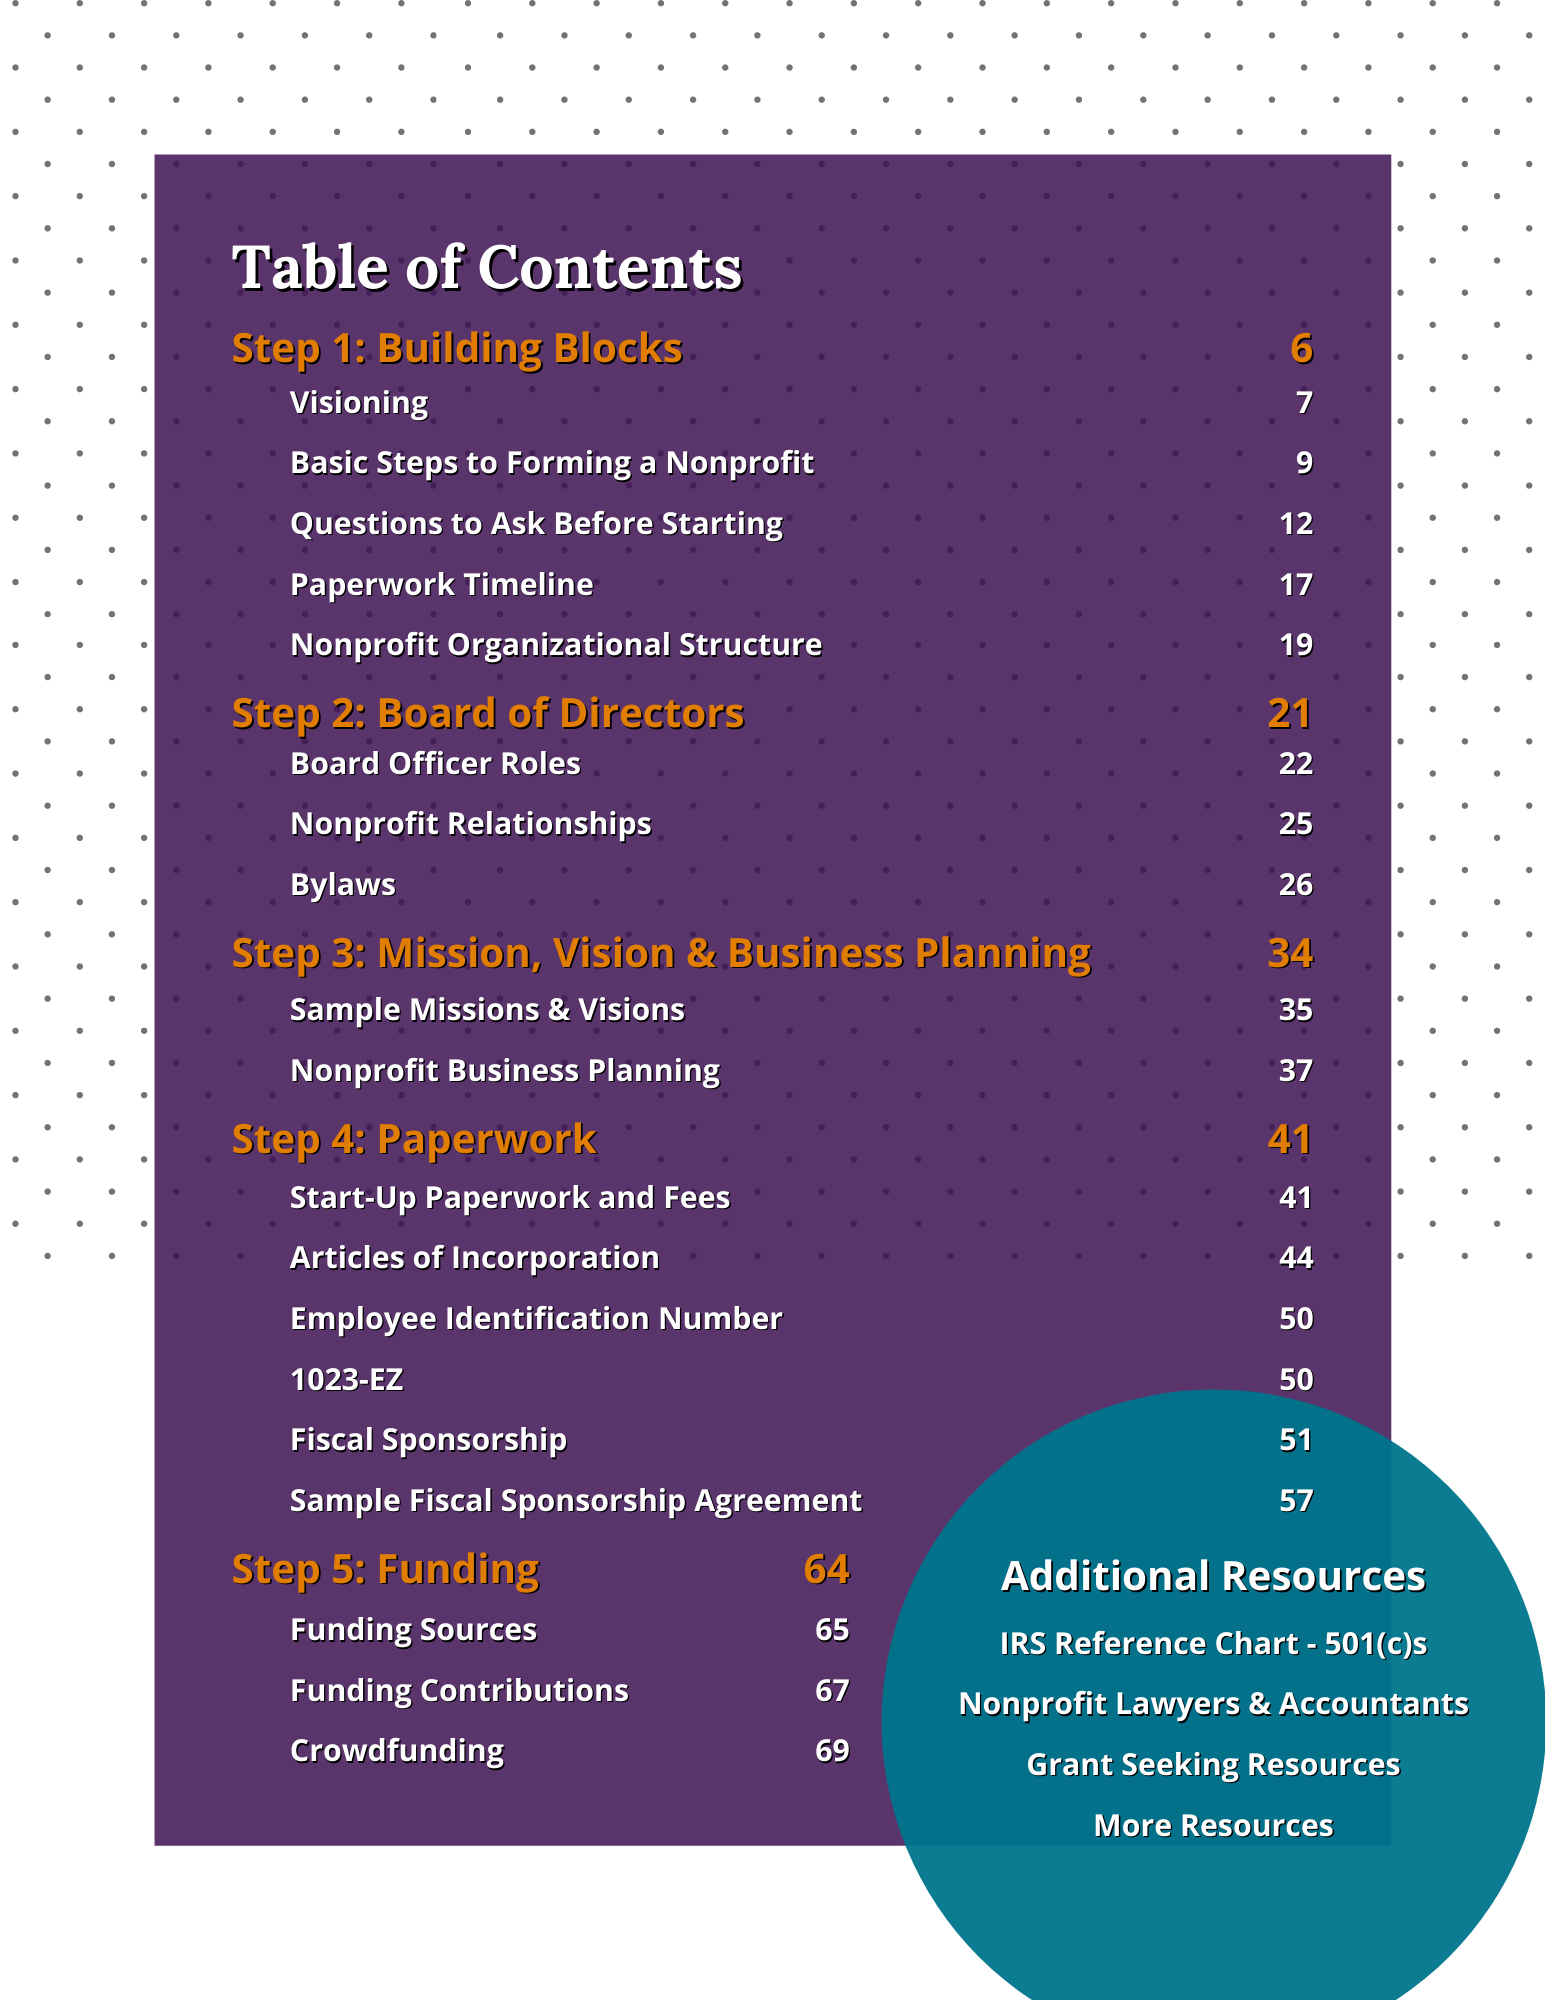 Starting Your Nonprofit Table of Contents